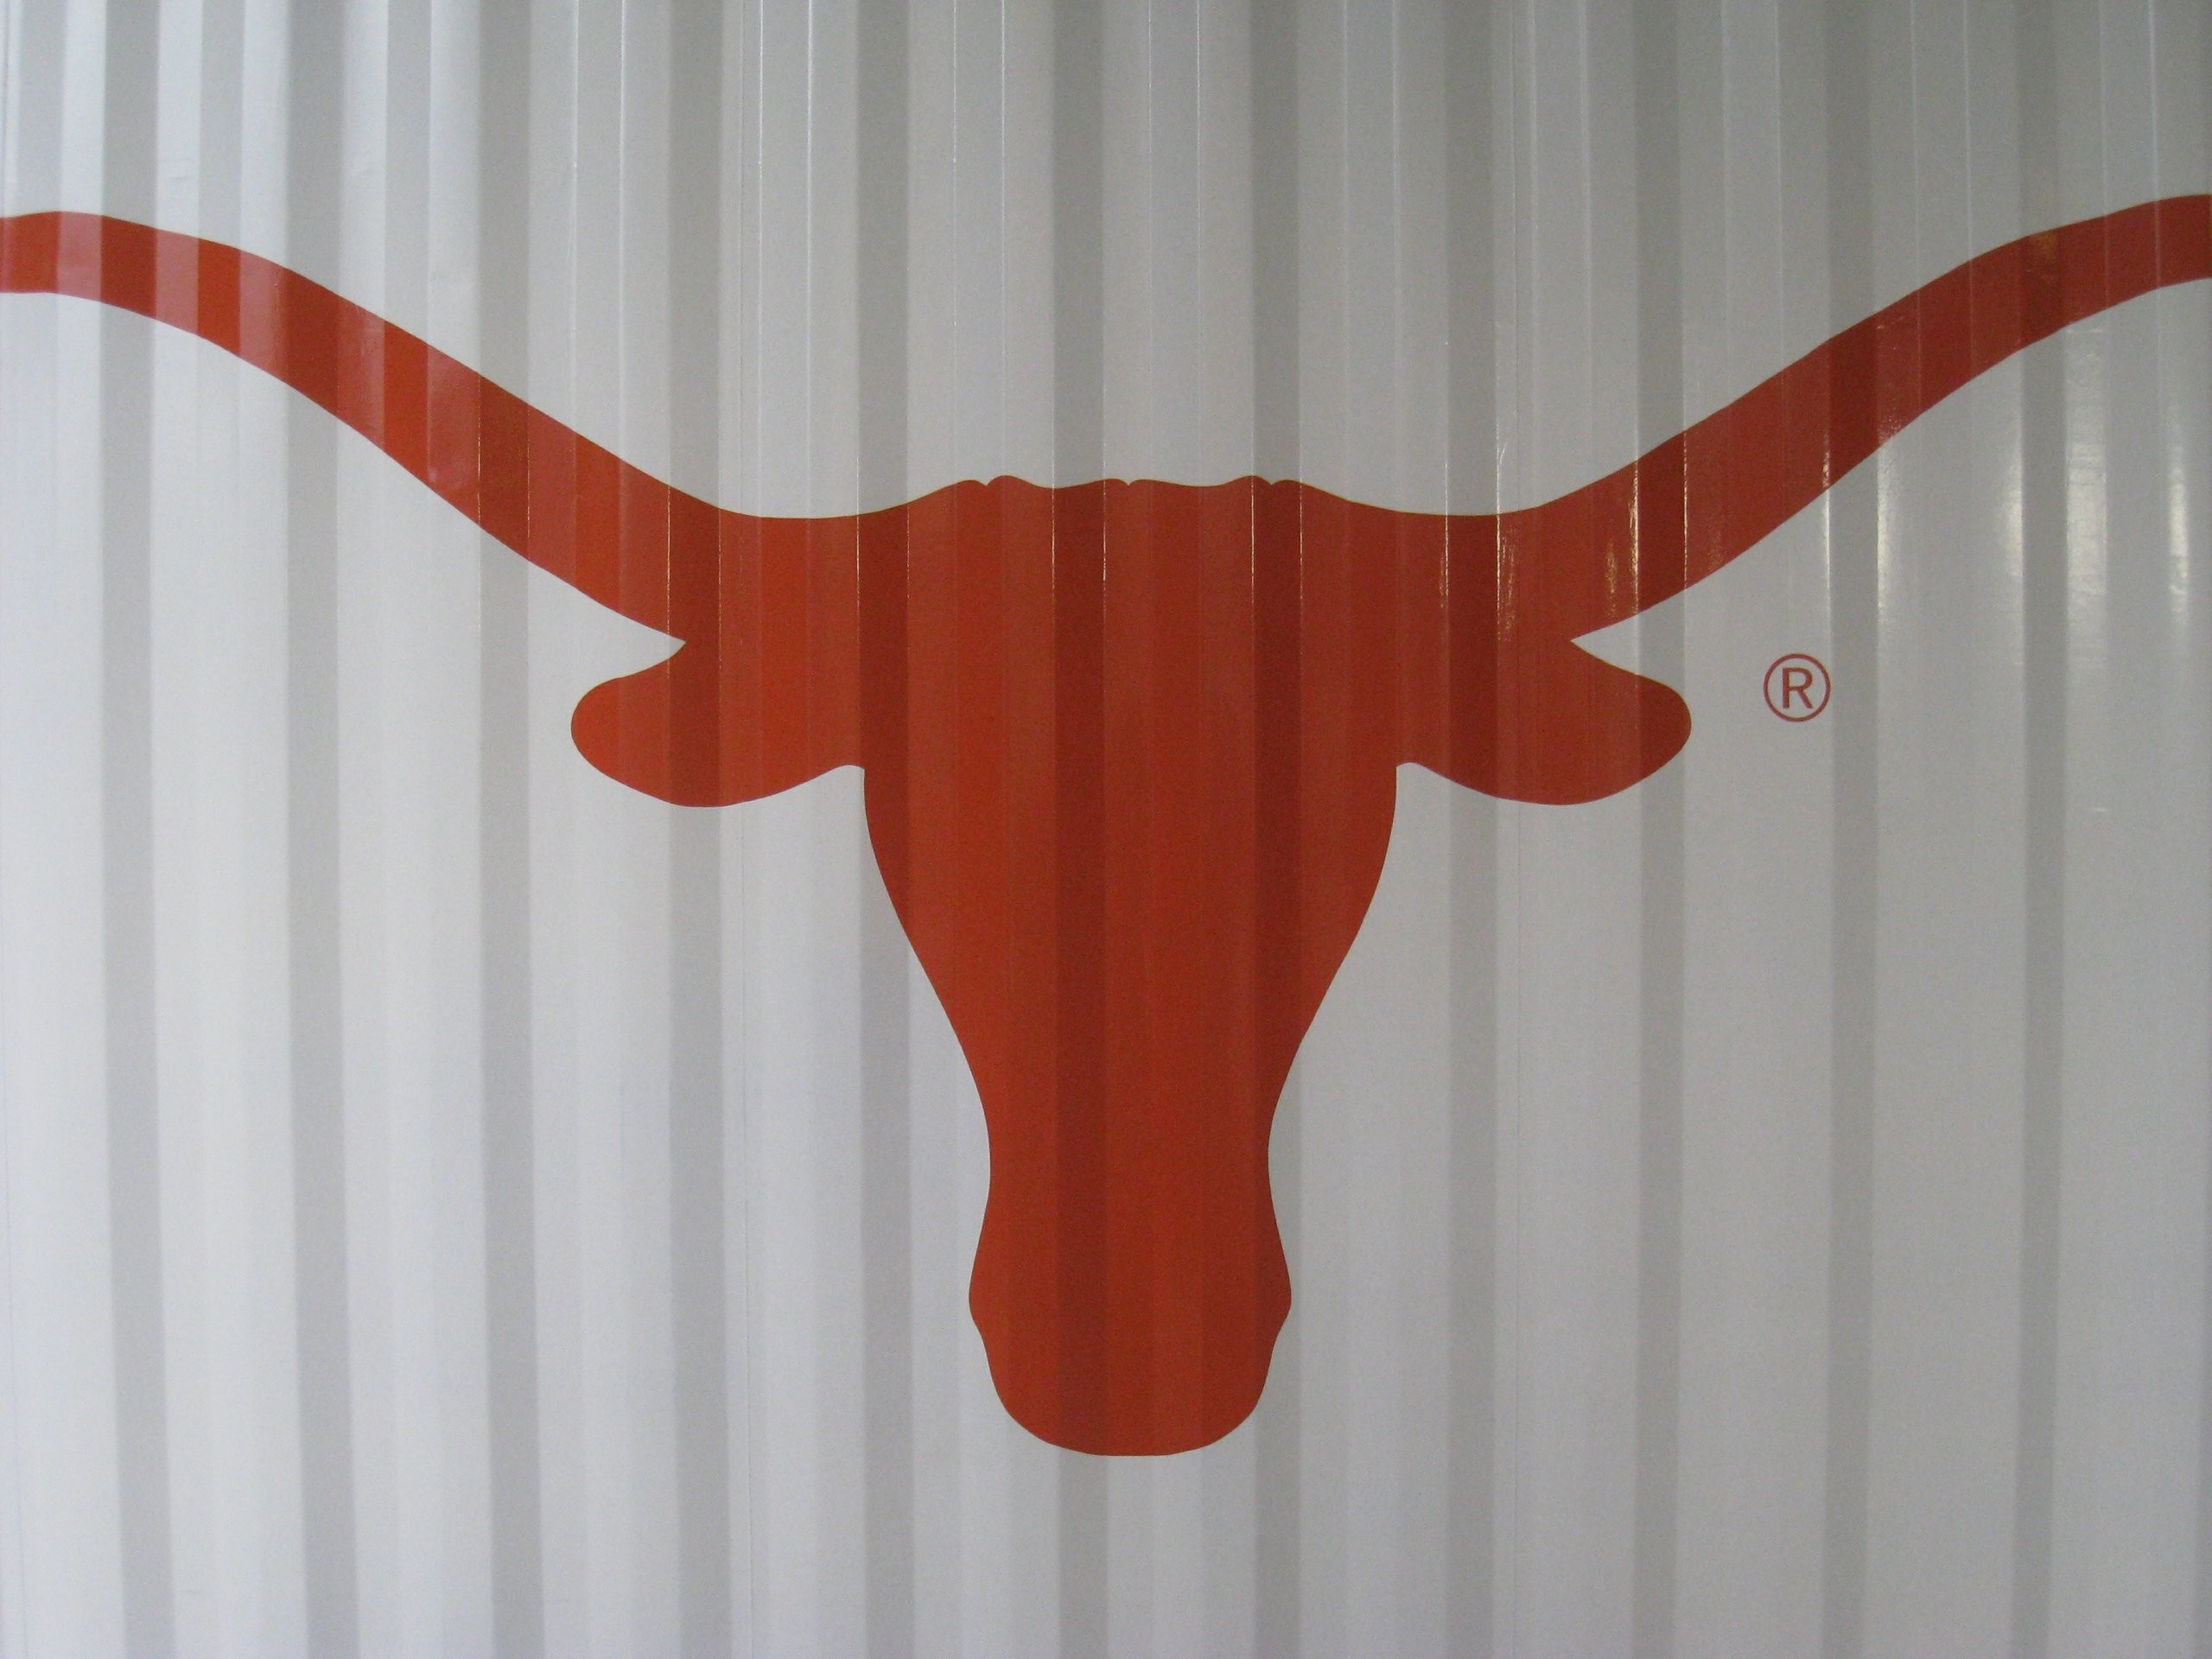 1920x1080 Wallpaperwiki Texas Longhorns Football HD Pictures PIC